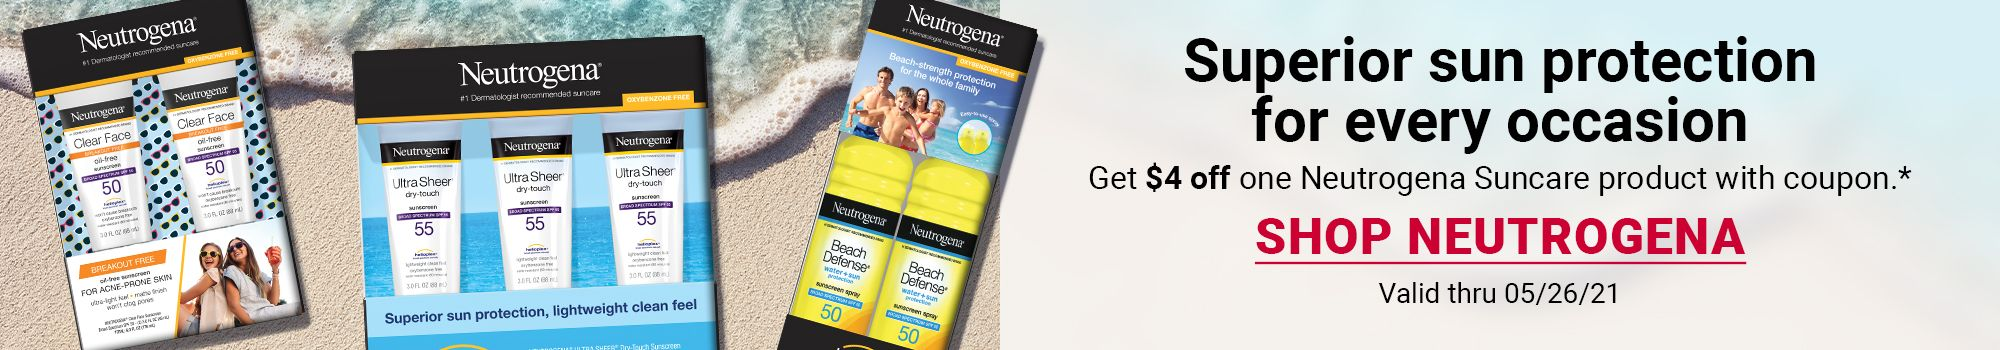 Superior sun protection for every occasion. Get $4 off one Neutrogena Suncare product with coupon. Click to Shop Neutrogena. Valid through 05/26/21